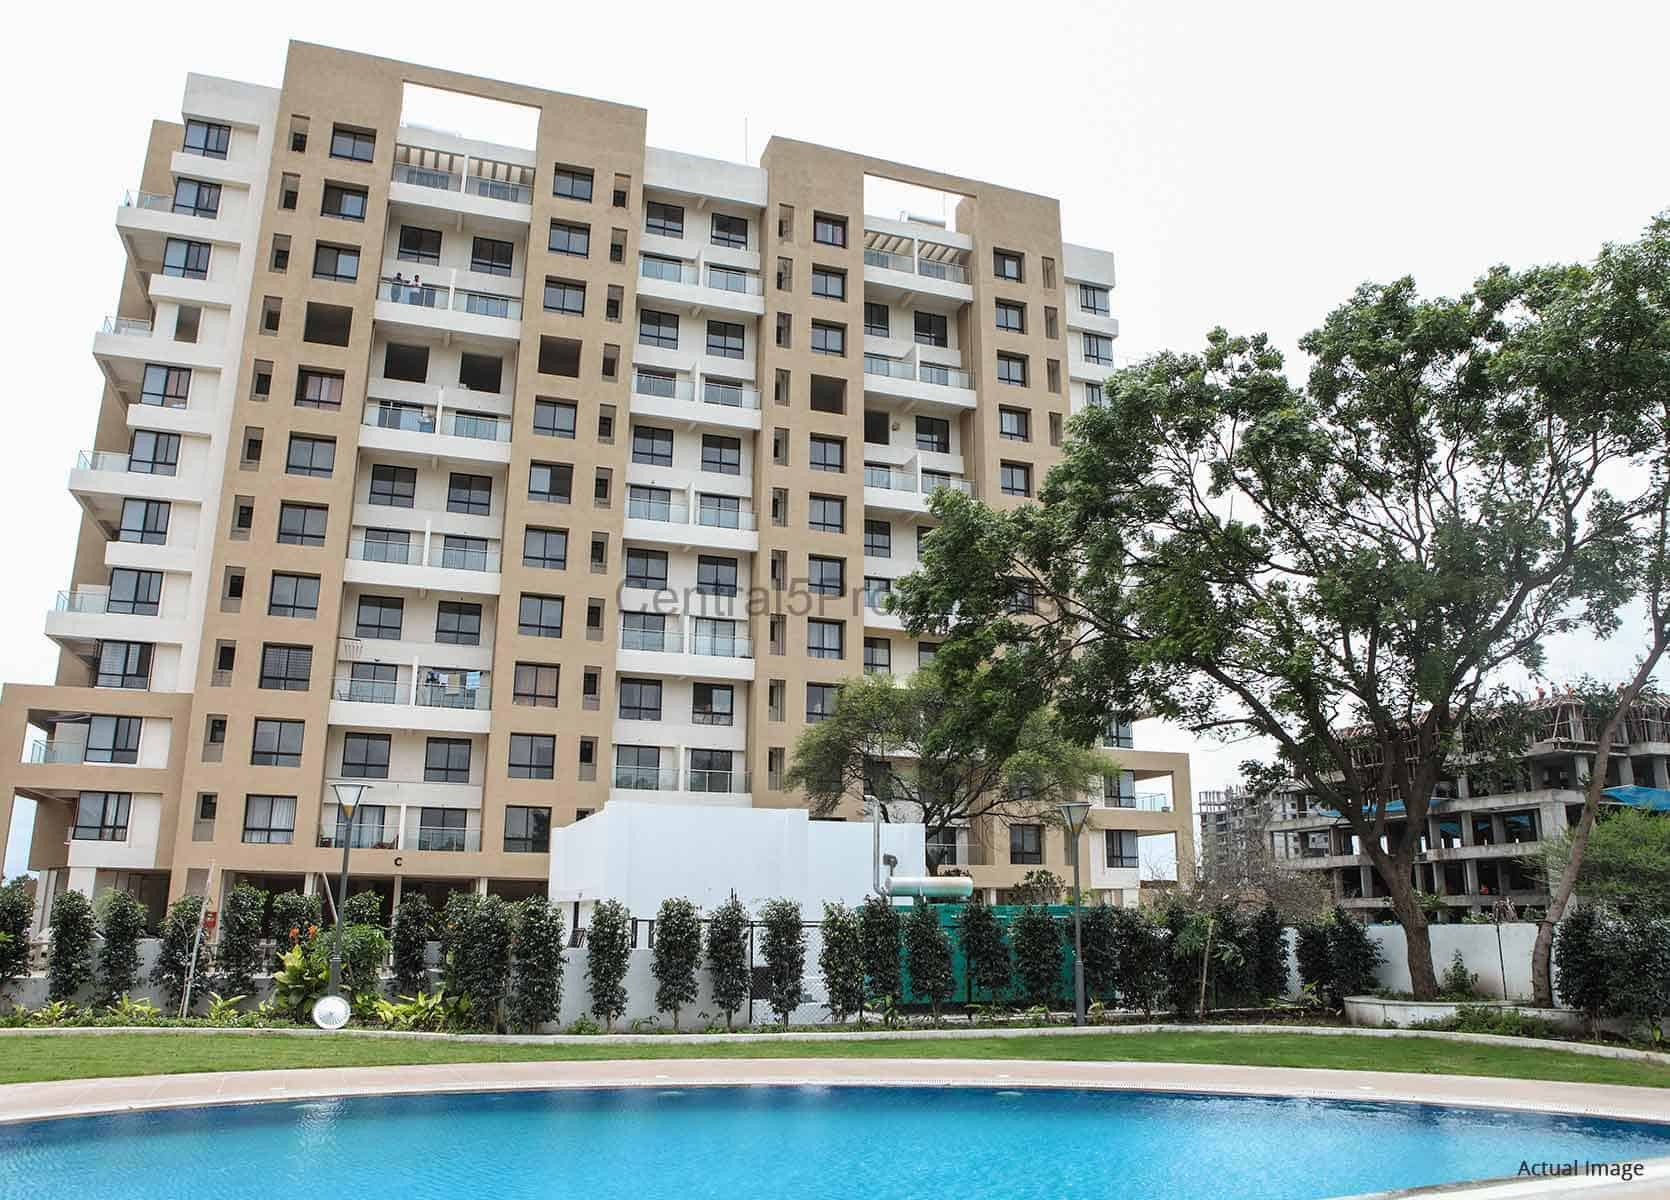 2BHK Homes for sale in Wagholi Pune